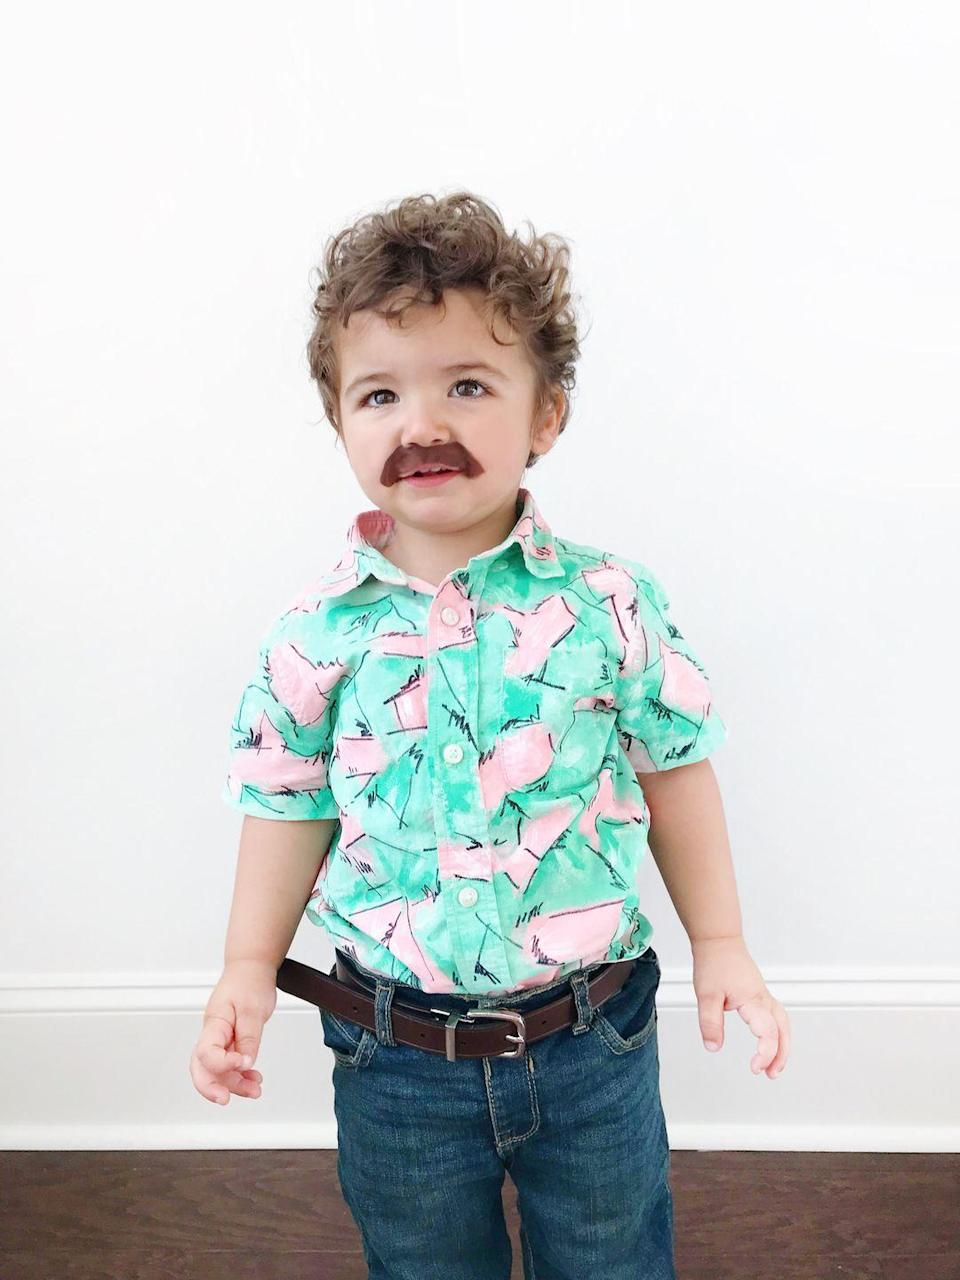 """<p>Sorry, we almost fainted for a second. No, the Demogorgon didn't leap out of the shadows—we nearly passed out upon seeing this <em>adorable</em> costume! Baby Hopper comes to life with a hand-painted shirt showcased on <em>Stranger Things 3</em> and a faux mustache. </p><p><strong>Get the tutorial at <a href=""""http://www.loveandlion.com/diy/diy-halloween-costume-baby-hopper-stranger-things/"""" rel=""""nofollow noopener"""" target=""""_blank"""" data-ylk=""""slk:Love & Lion"""" class=""""link rapid-noclick-resp"""">Love & Lion</a>. </strong></p><p><a class=""""link rapid-noclick-resp"""" href=""""https://www.amazon.com/gp/product/B011BV5X1C/?tag=syn-yahoo-20&ascsubtag=%5Bartid%7C10050.g.29398849%5Bsrc%7Cyahoo-us"""" rel=""""nofollow noopener"""" target=""""_blank"""" data-ylk=""""slk:SHOP FABRIC PAINT"""">SHOP FABRIC PAINT</a></p>"""